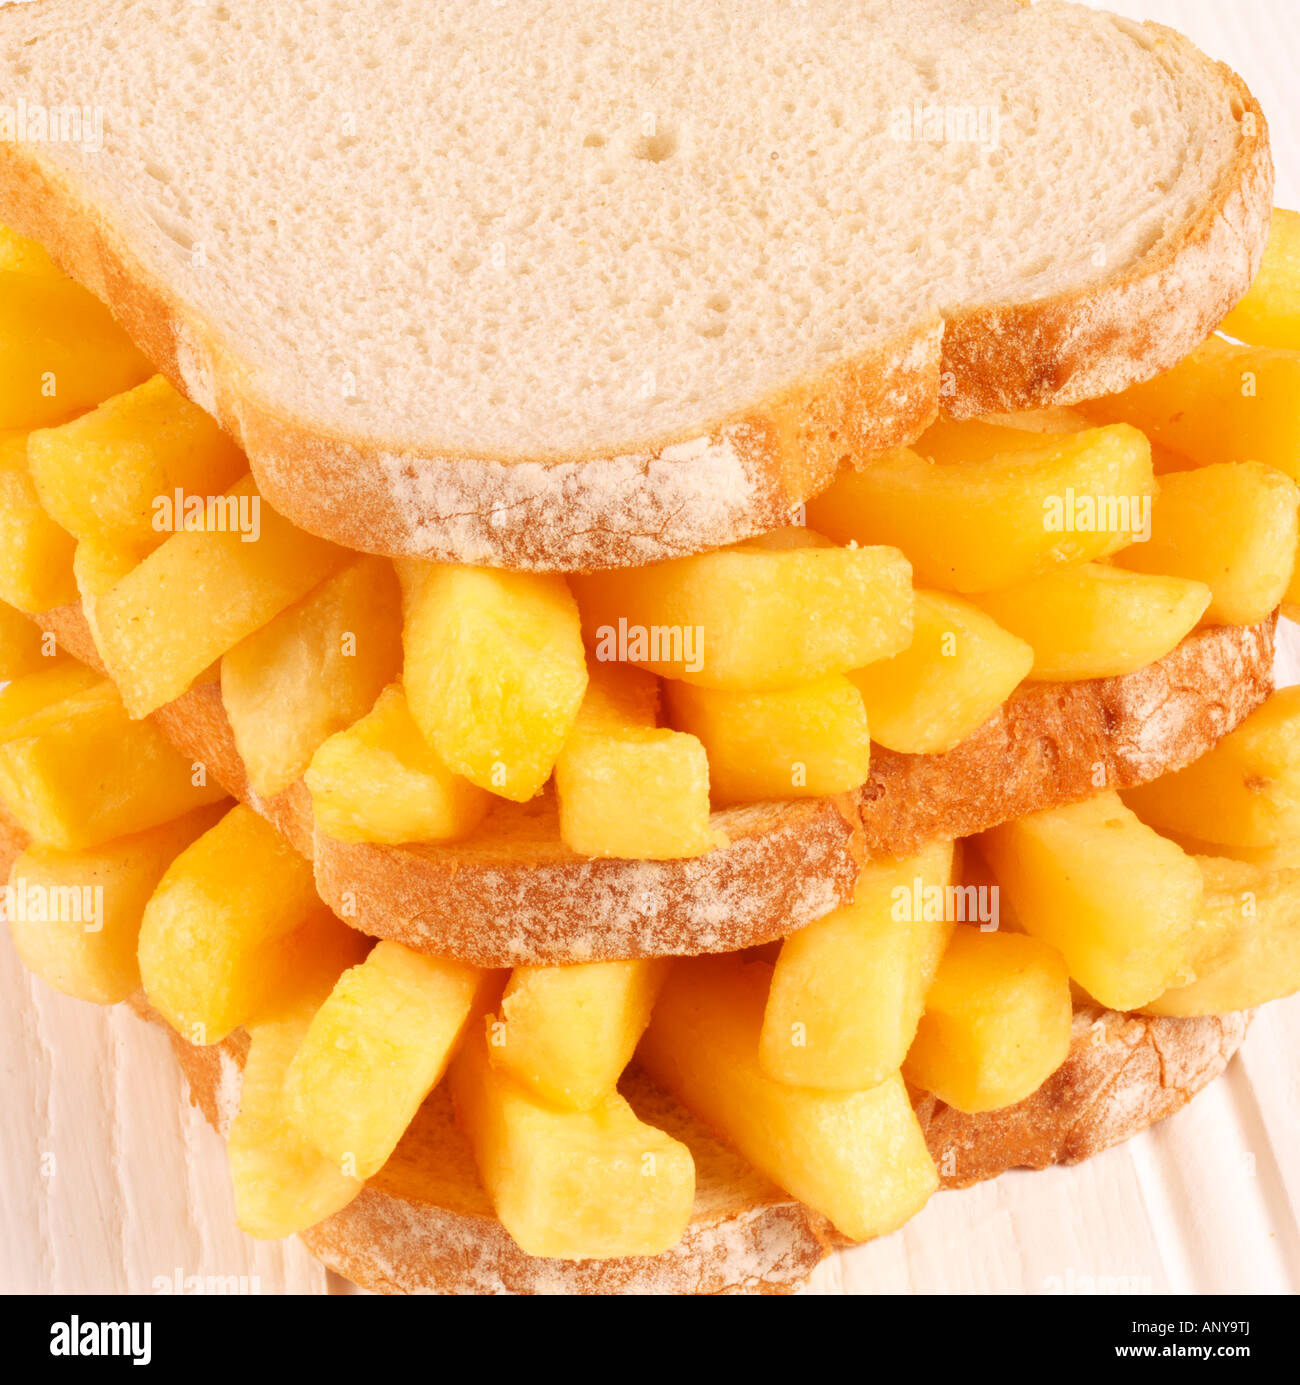 CHIP BUTTY CLOSE UP - Stock Image